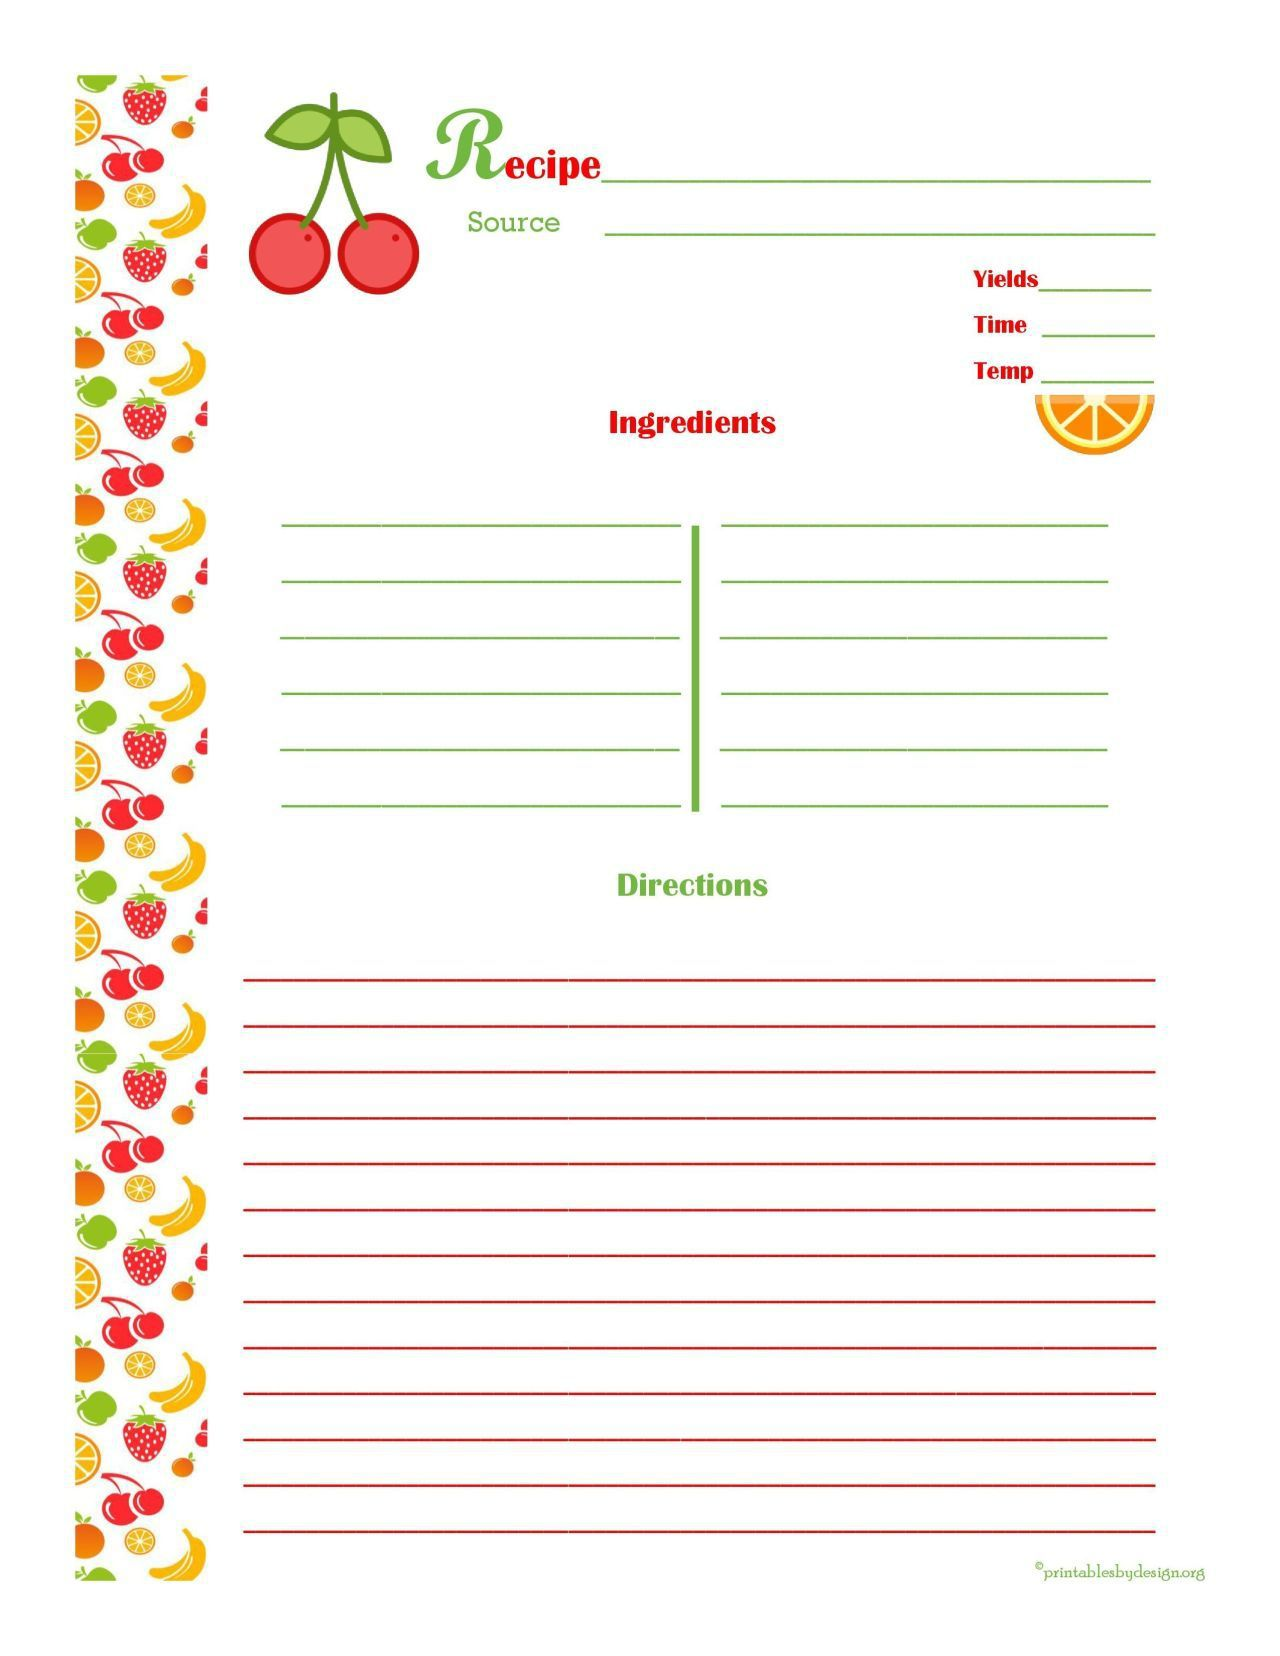 001 Fascinating Editable Recipe Card Template High Definition  Free For Microsoft Word 4x6 PageFull